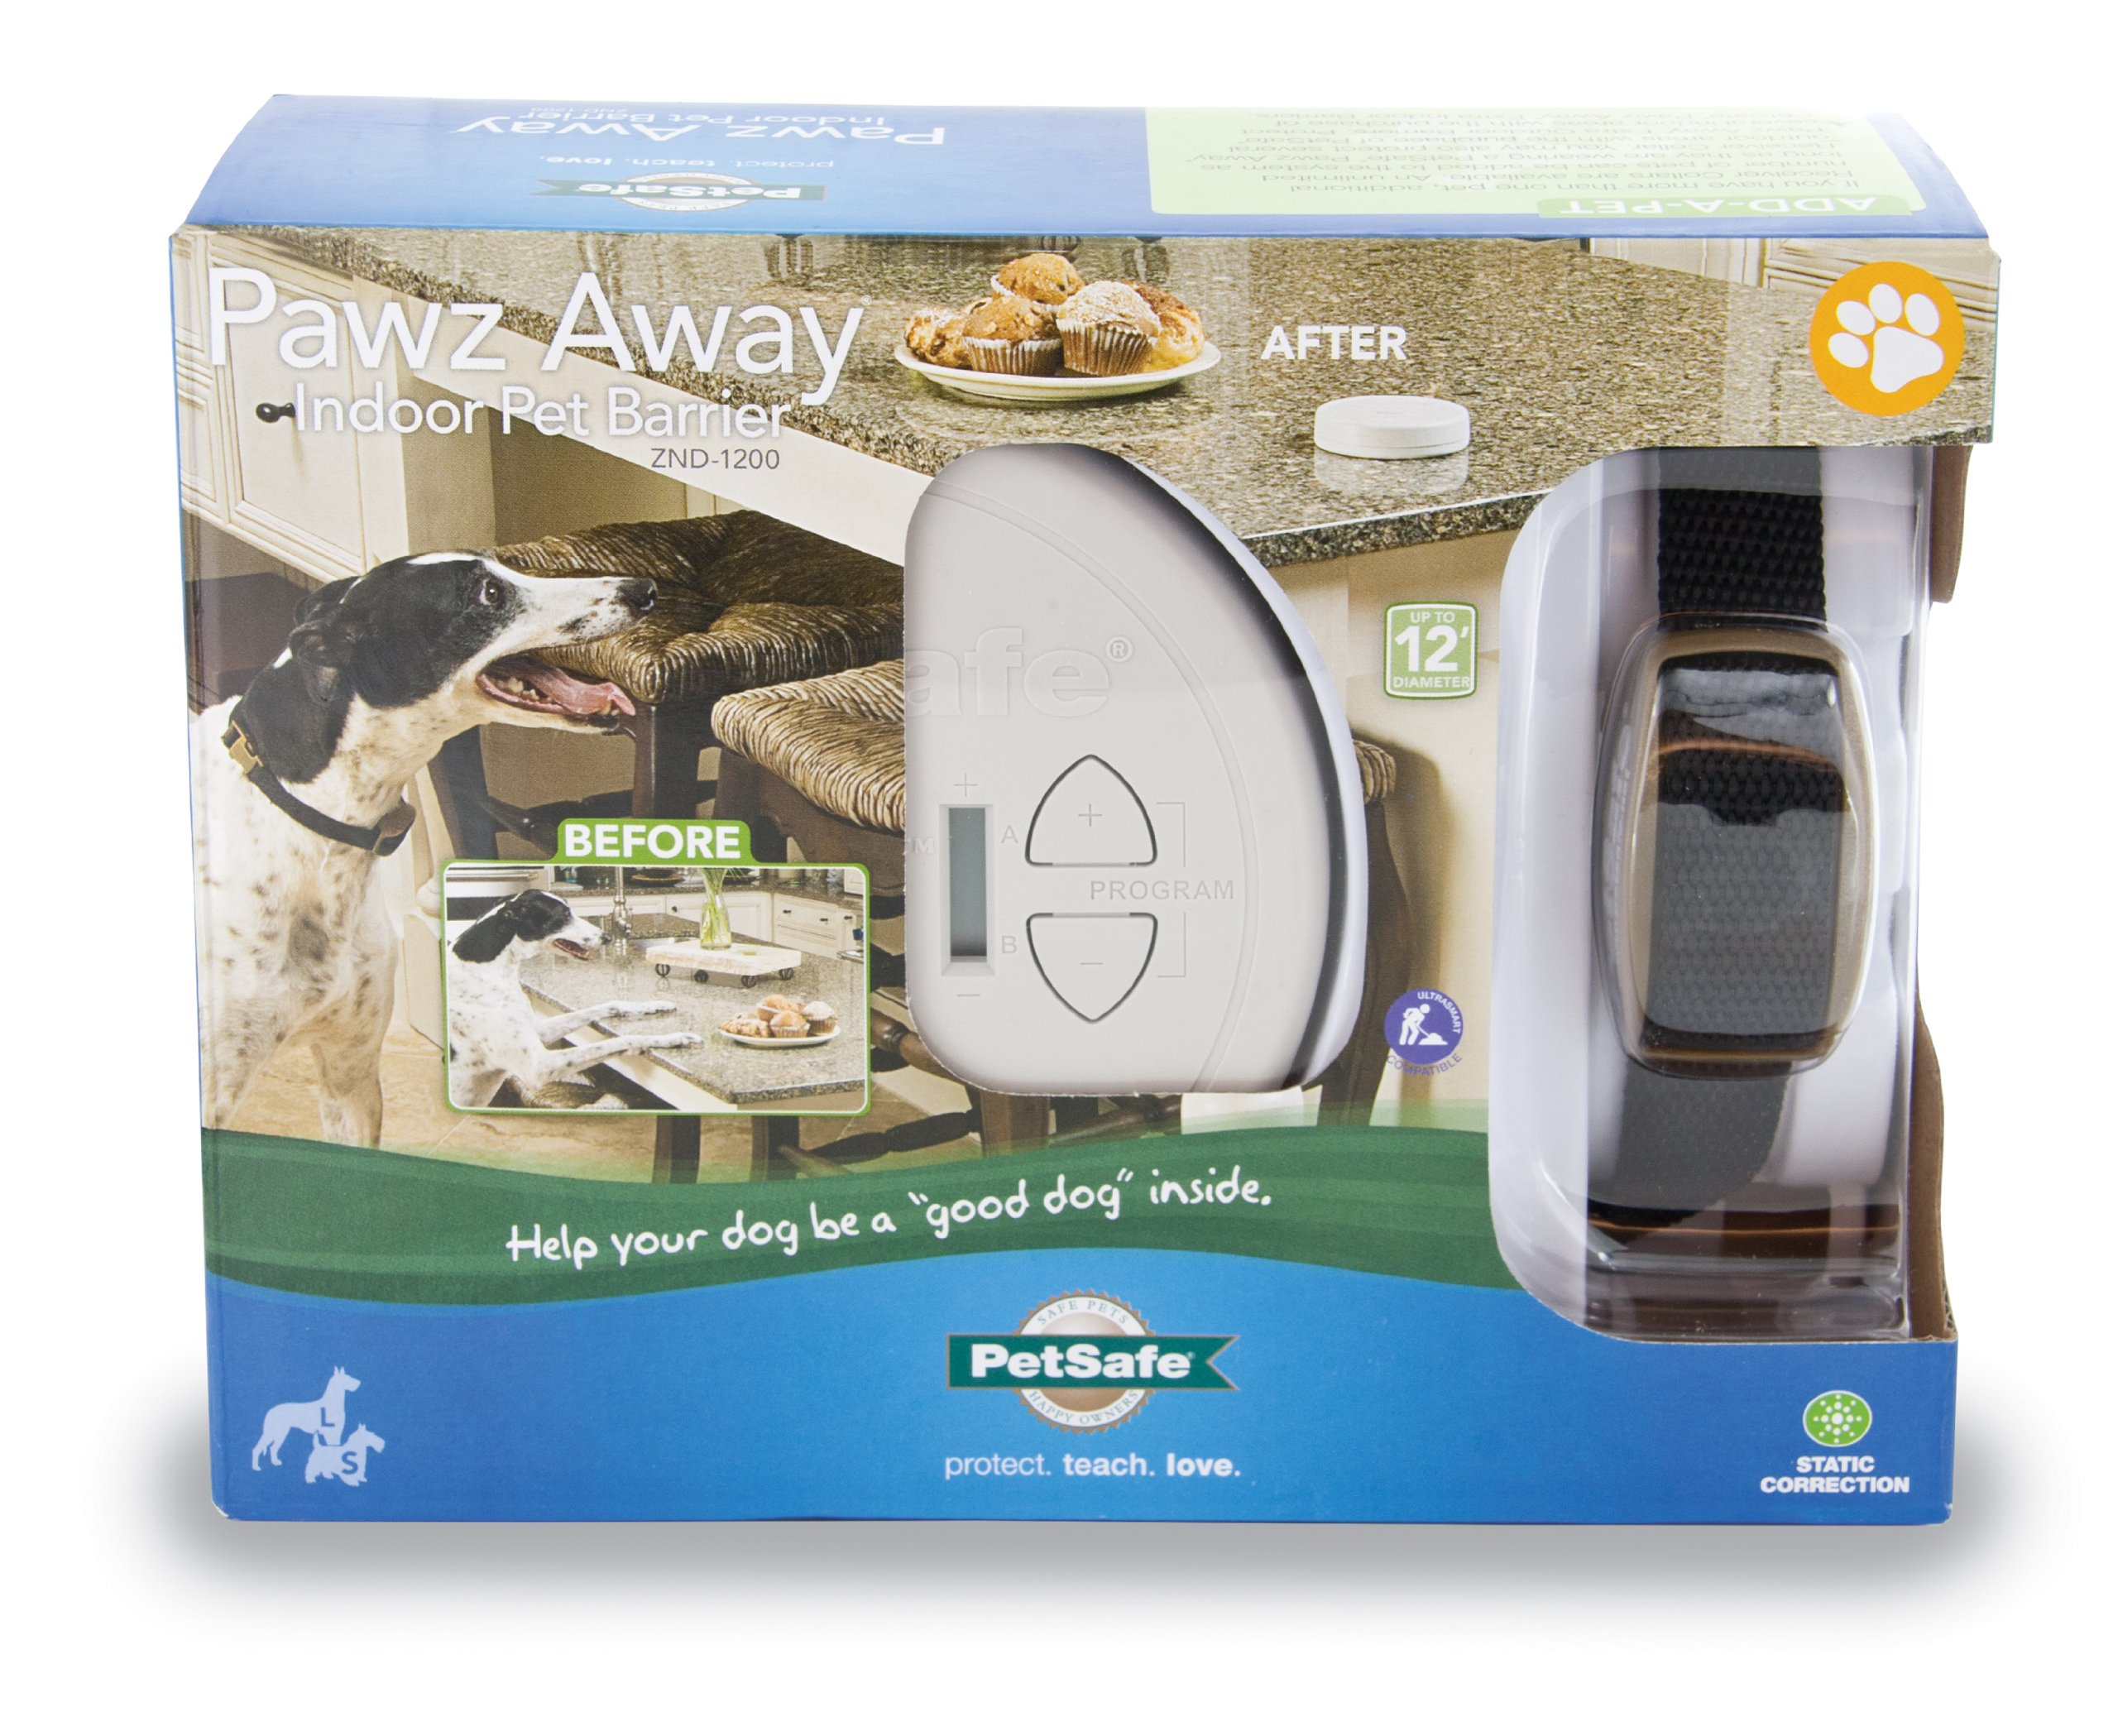 PetSafe Pawz Away Pet Barriers with Adjustable Range, Pet Proofing for Cats and Dogs, Static Stimulation – ZND-1200